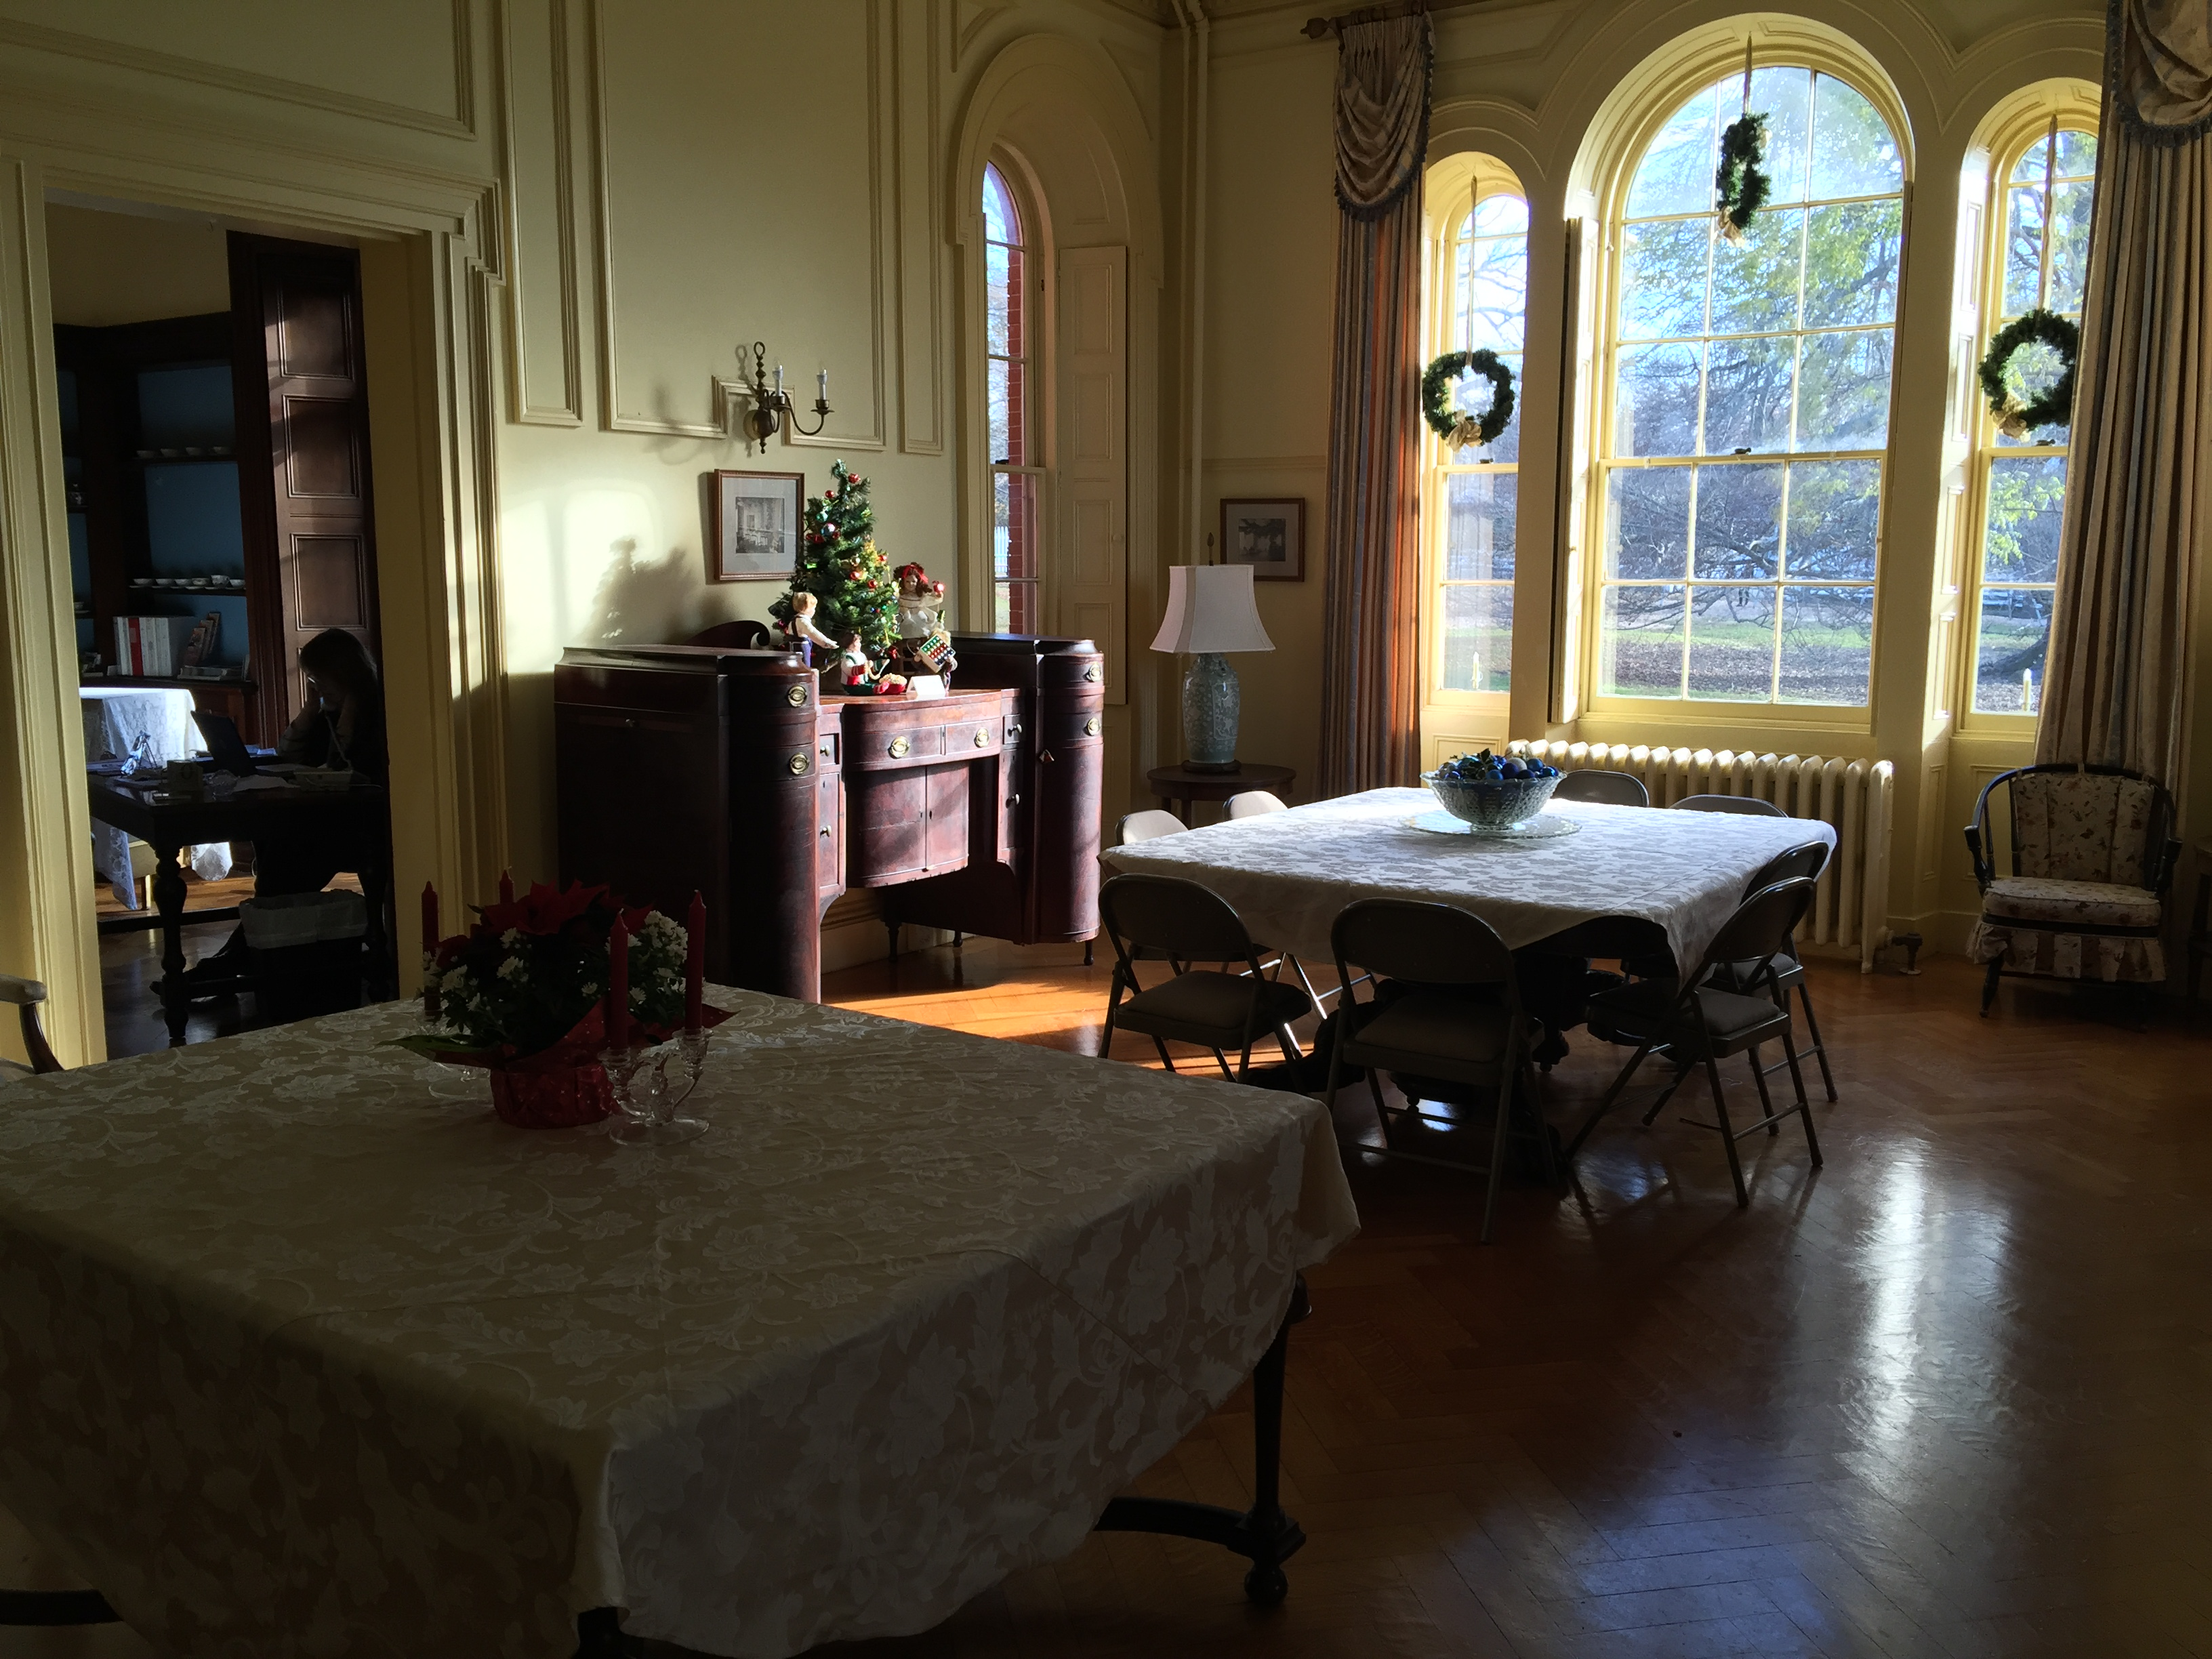 A former parlor within the Edward King House Senior Center.